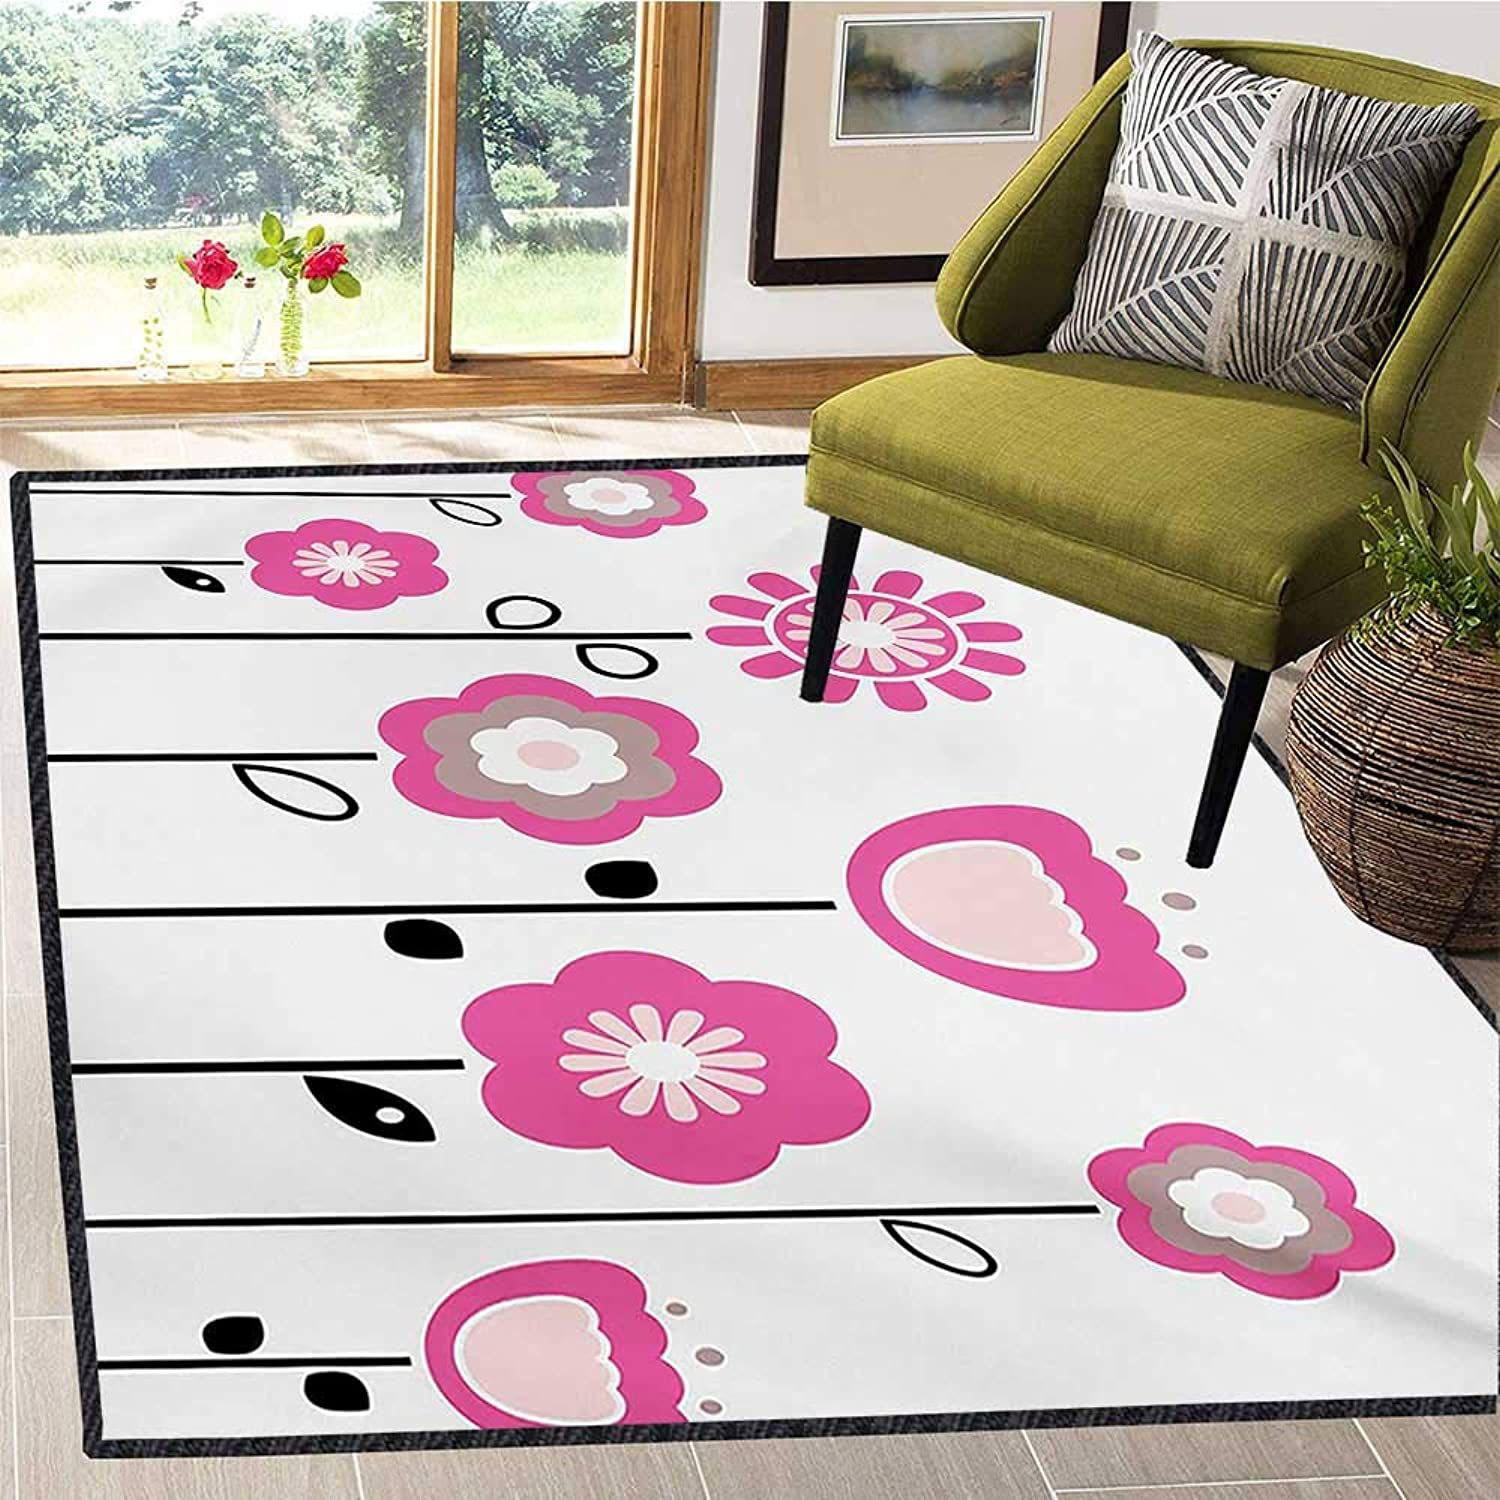 Pink and White, Floor Mat for Kids, Stylized Abstract Flowers on Rural Field Theme Girly Artistic Nature, Door Mat Indoors Bathroom Mats Non Slip 5x6 Ft Pink Tan Black